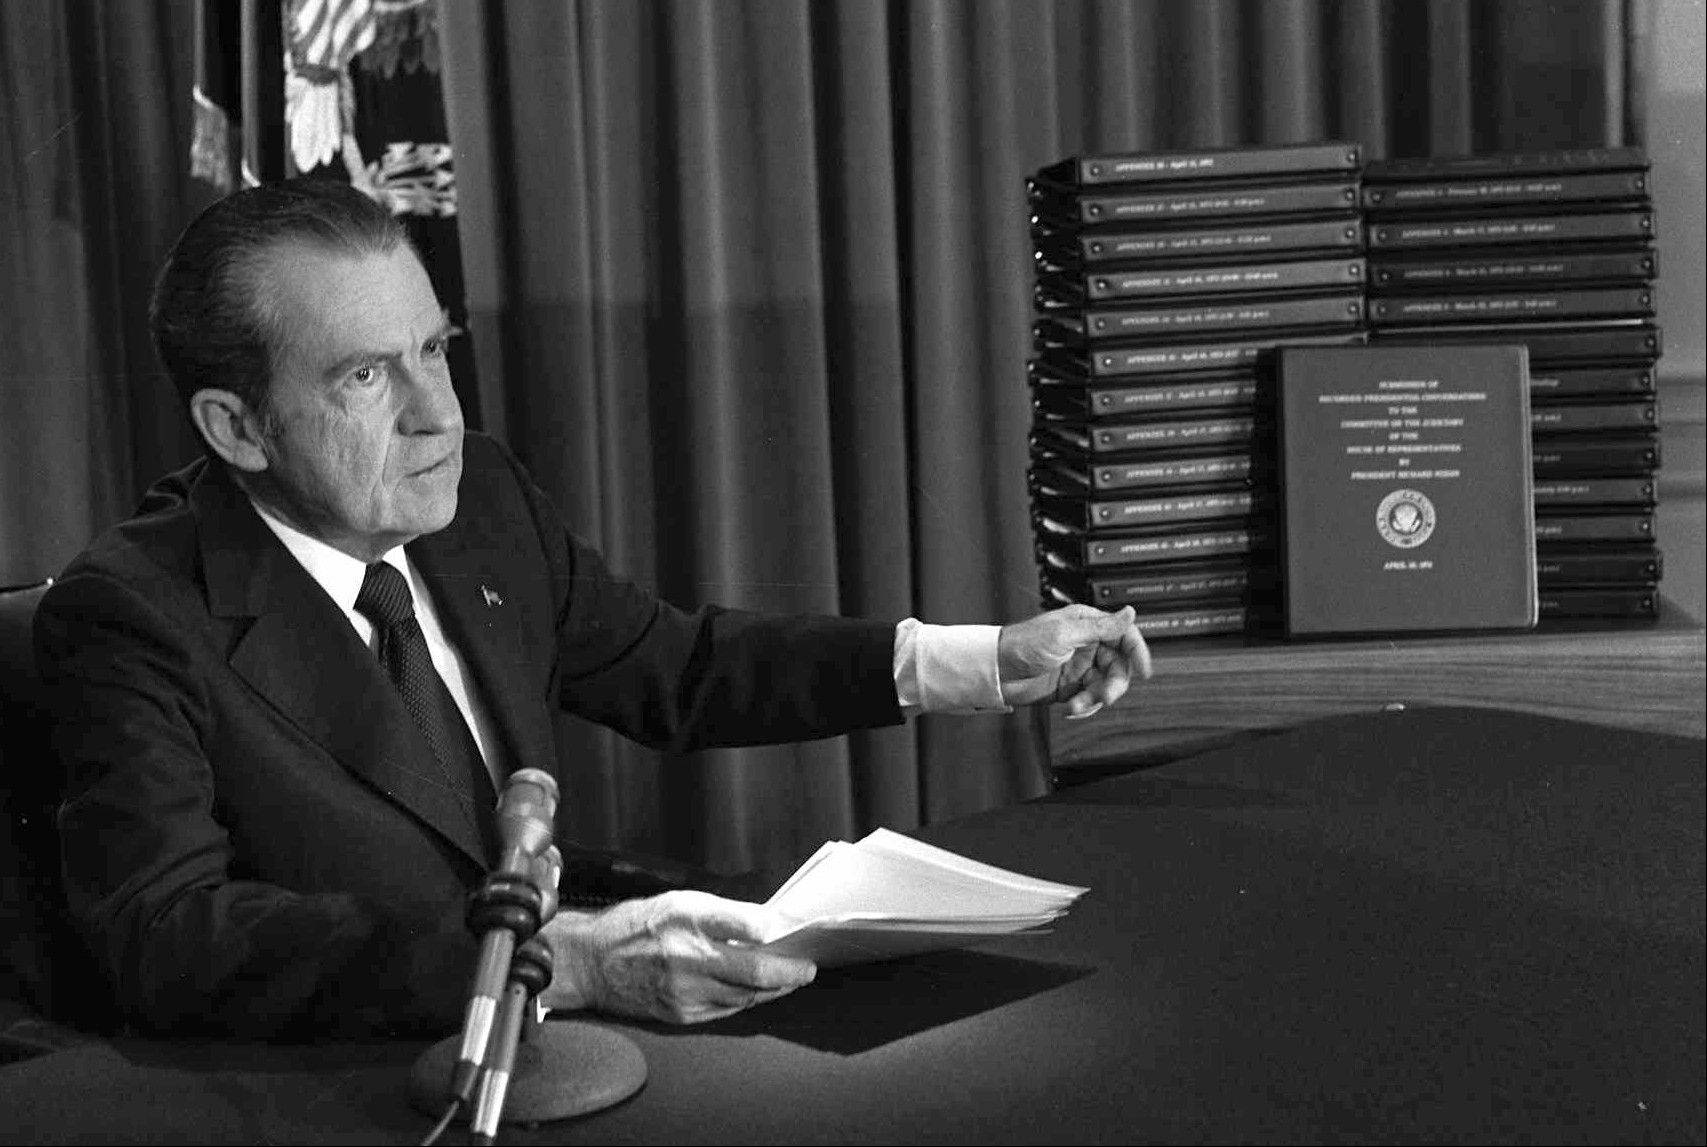 President Richard M. Nixon points to the transcripts of the White House tapes after he announced during a nationally-televised speech that he would turn over the transcripts to House impeachment investigators, in Washington. The last 340 hours of tapes from Nixon�s White House were released Wednesday, along with more than 140,000 pages of text materials.